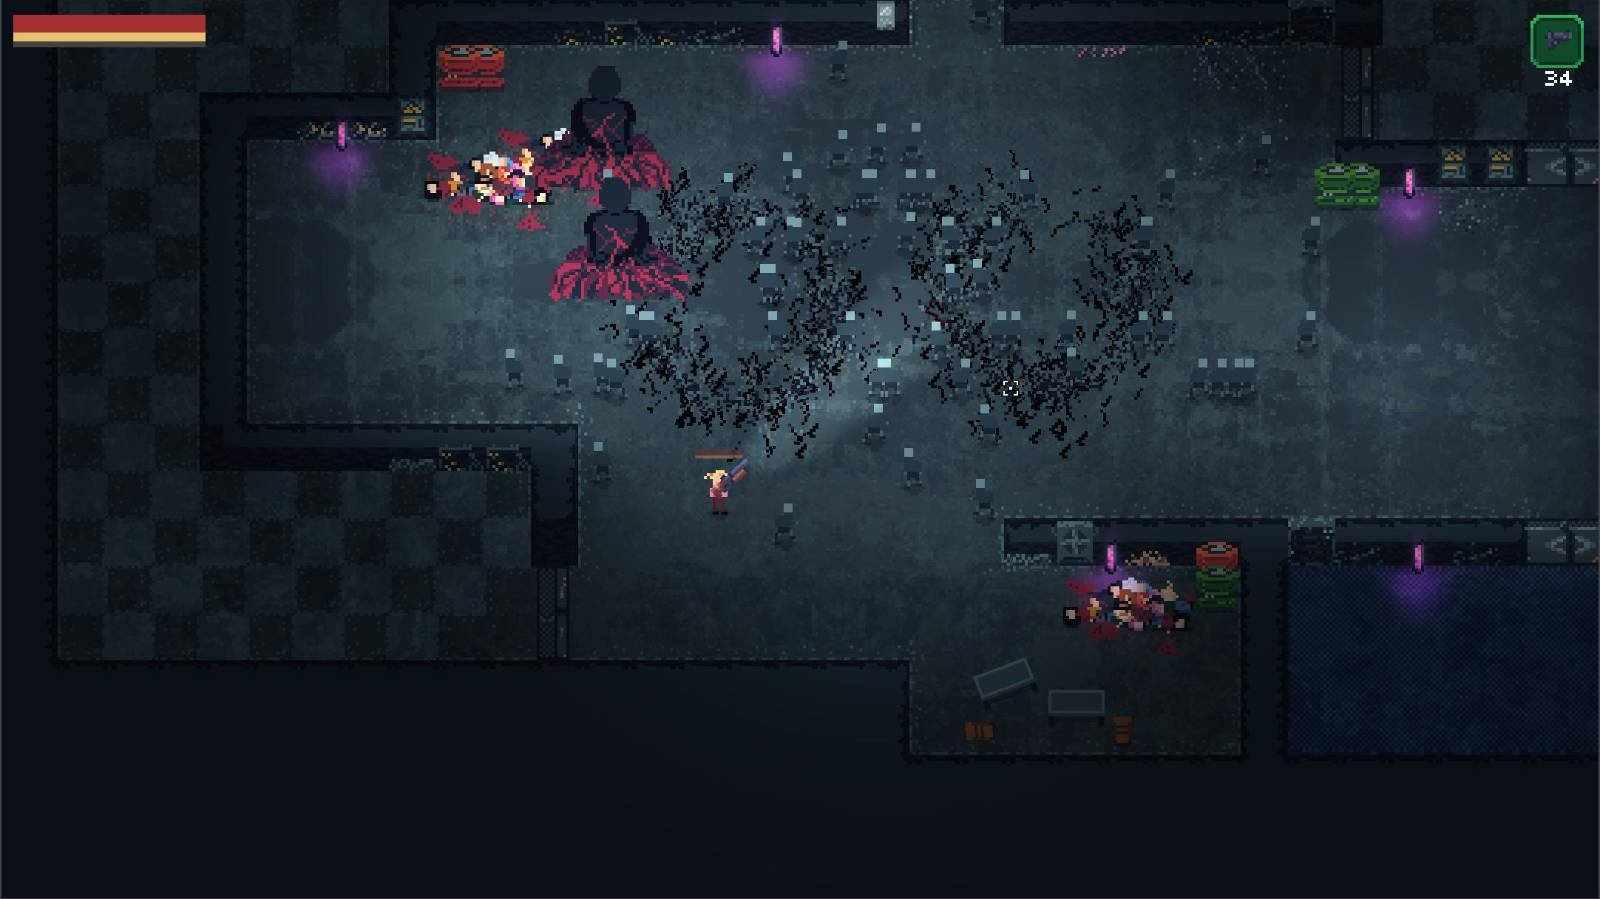 Gameplay screenshot with lots of zombies and a zombie boss